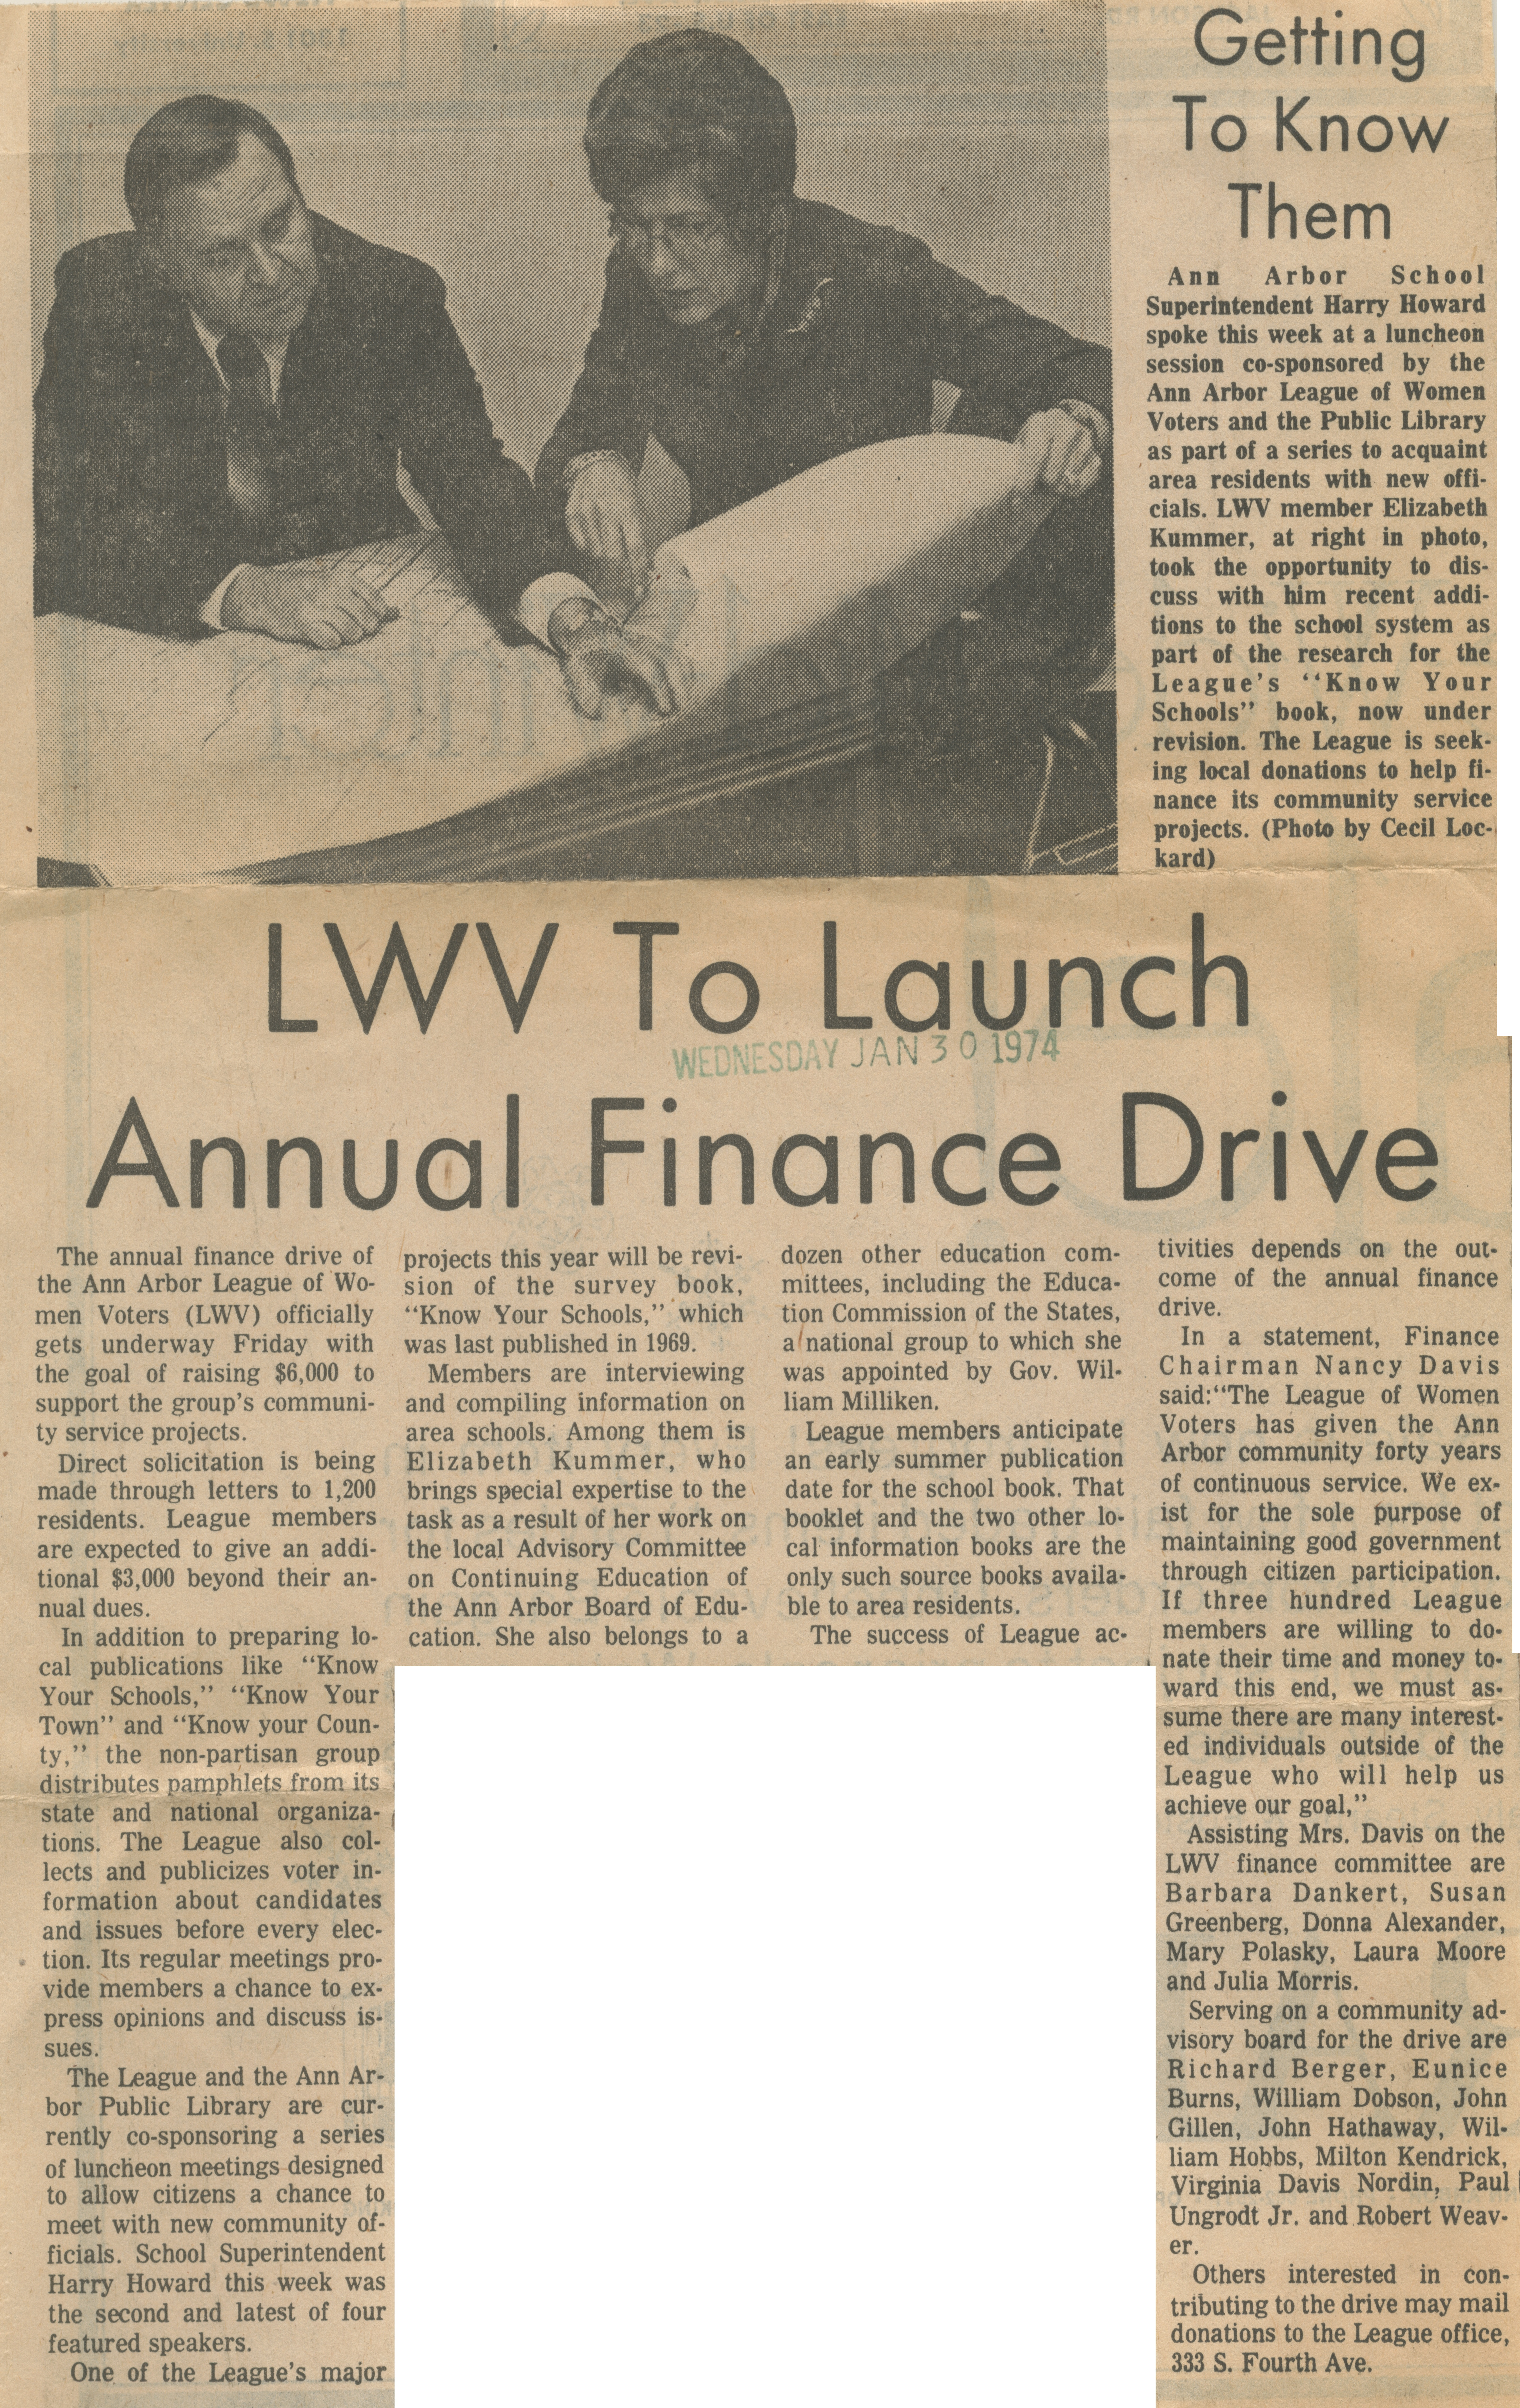 LWV To Launch Annual Finance Drive image